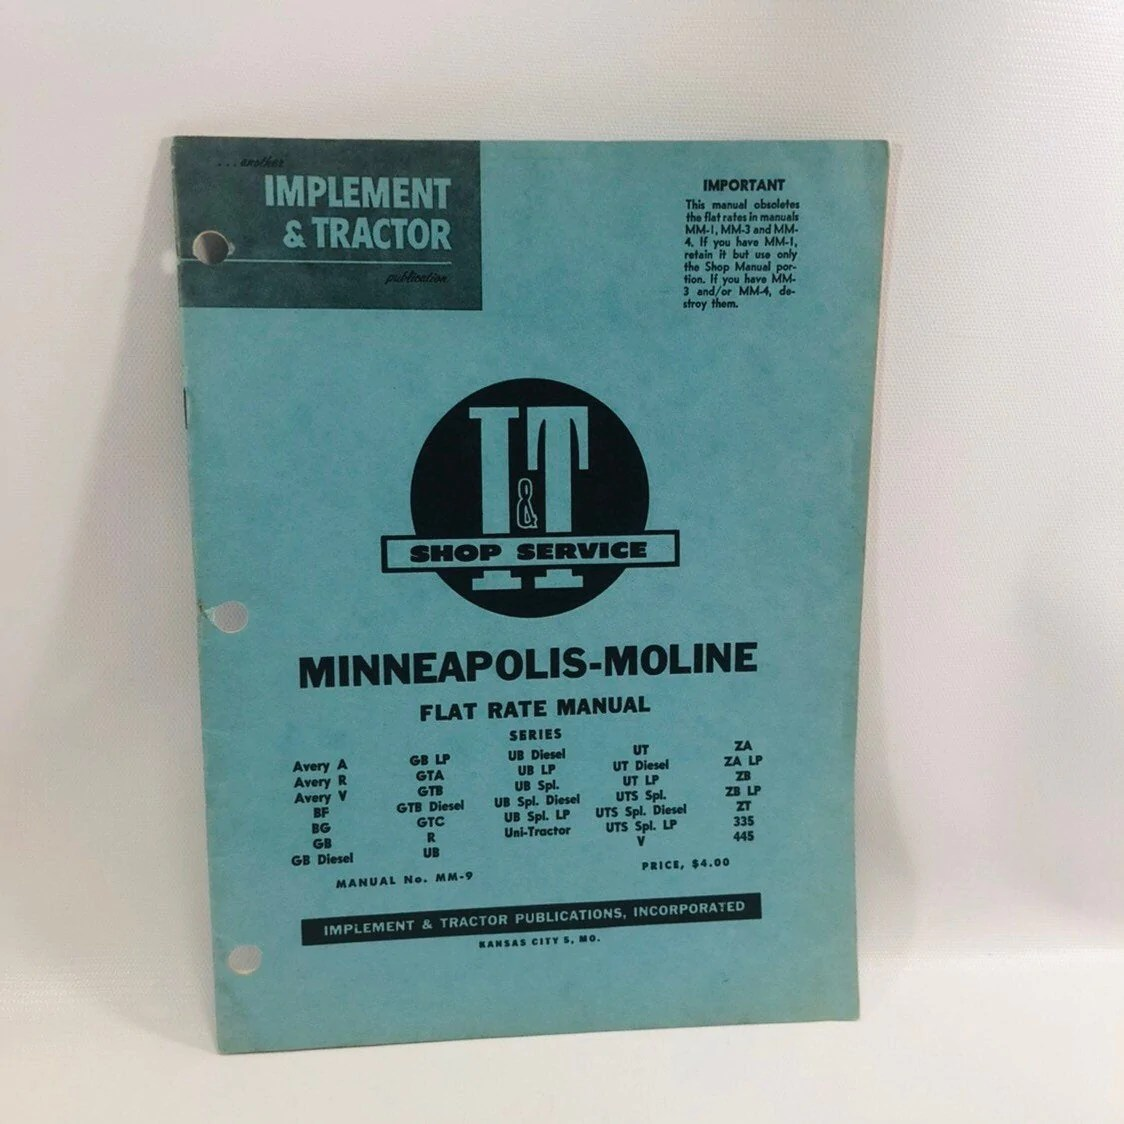 small resolution of i t shop service flat rate manual no mm 9 minneapolis moline 1959